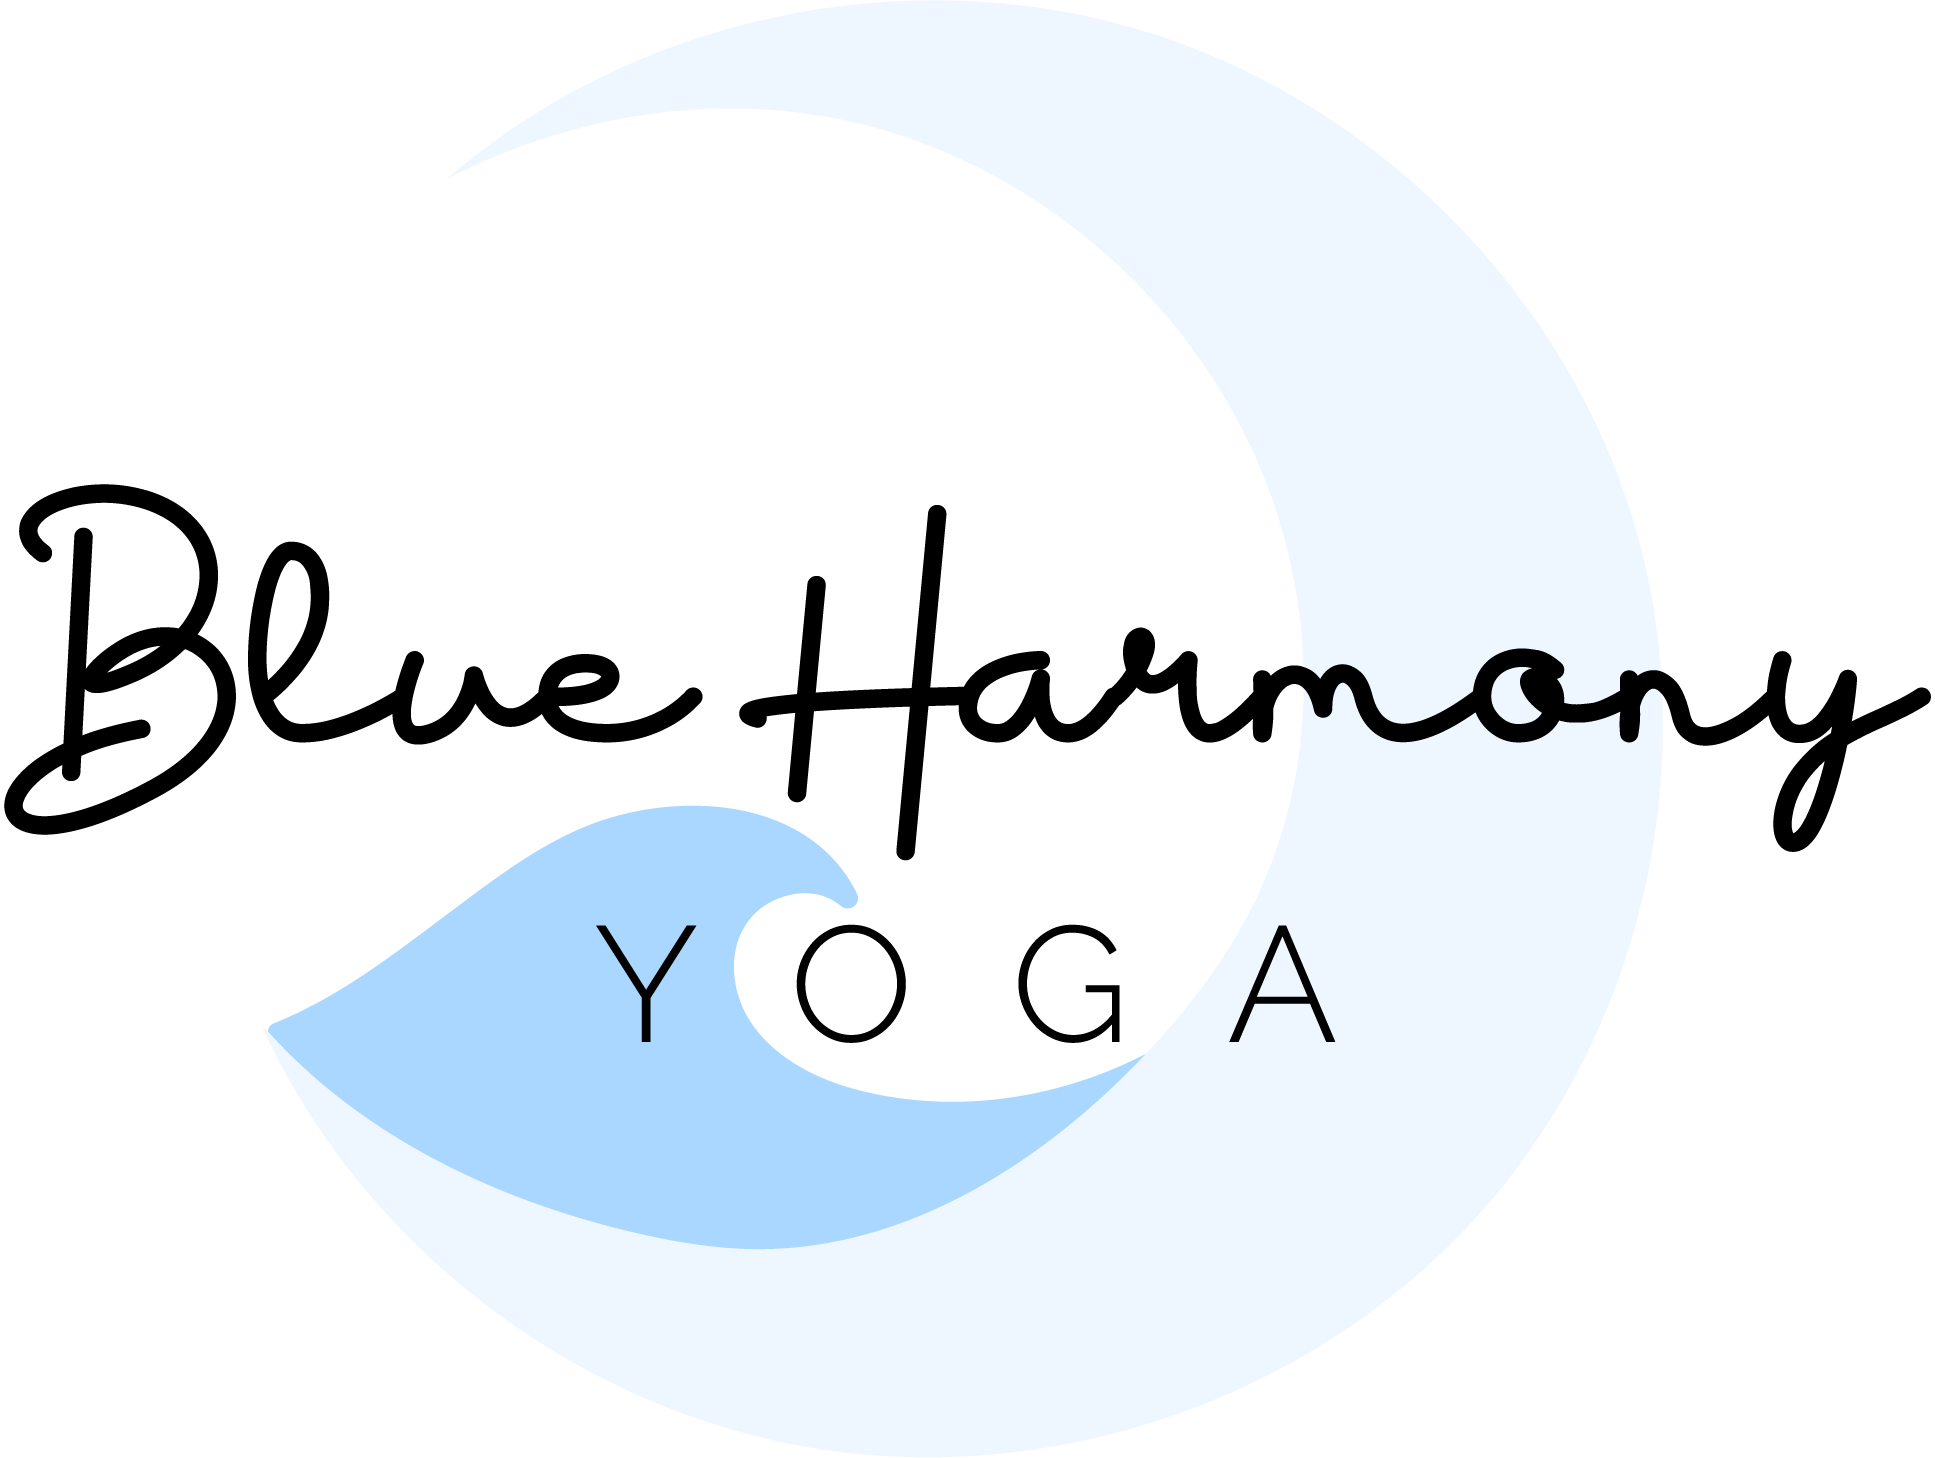 About - Find out about Blue Harmony Yoga, ourmission, our offerings, and our intention for sustainability within ourselves and our environments.